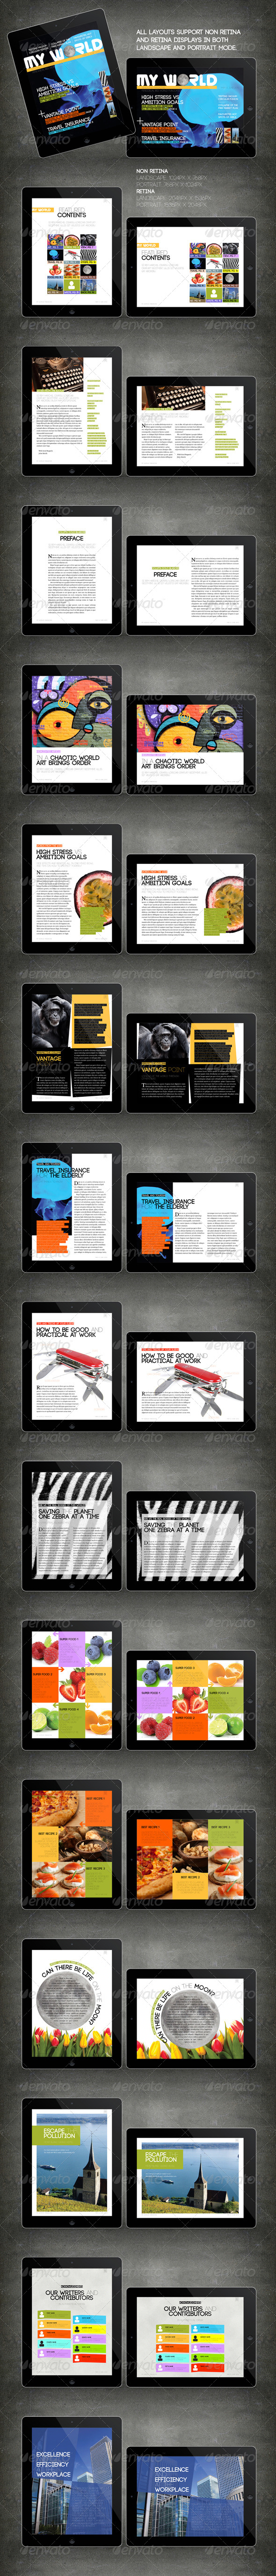 GraphicRiver iPad Tablet Magazine Template 16 Pages 4681764